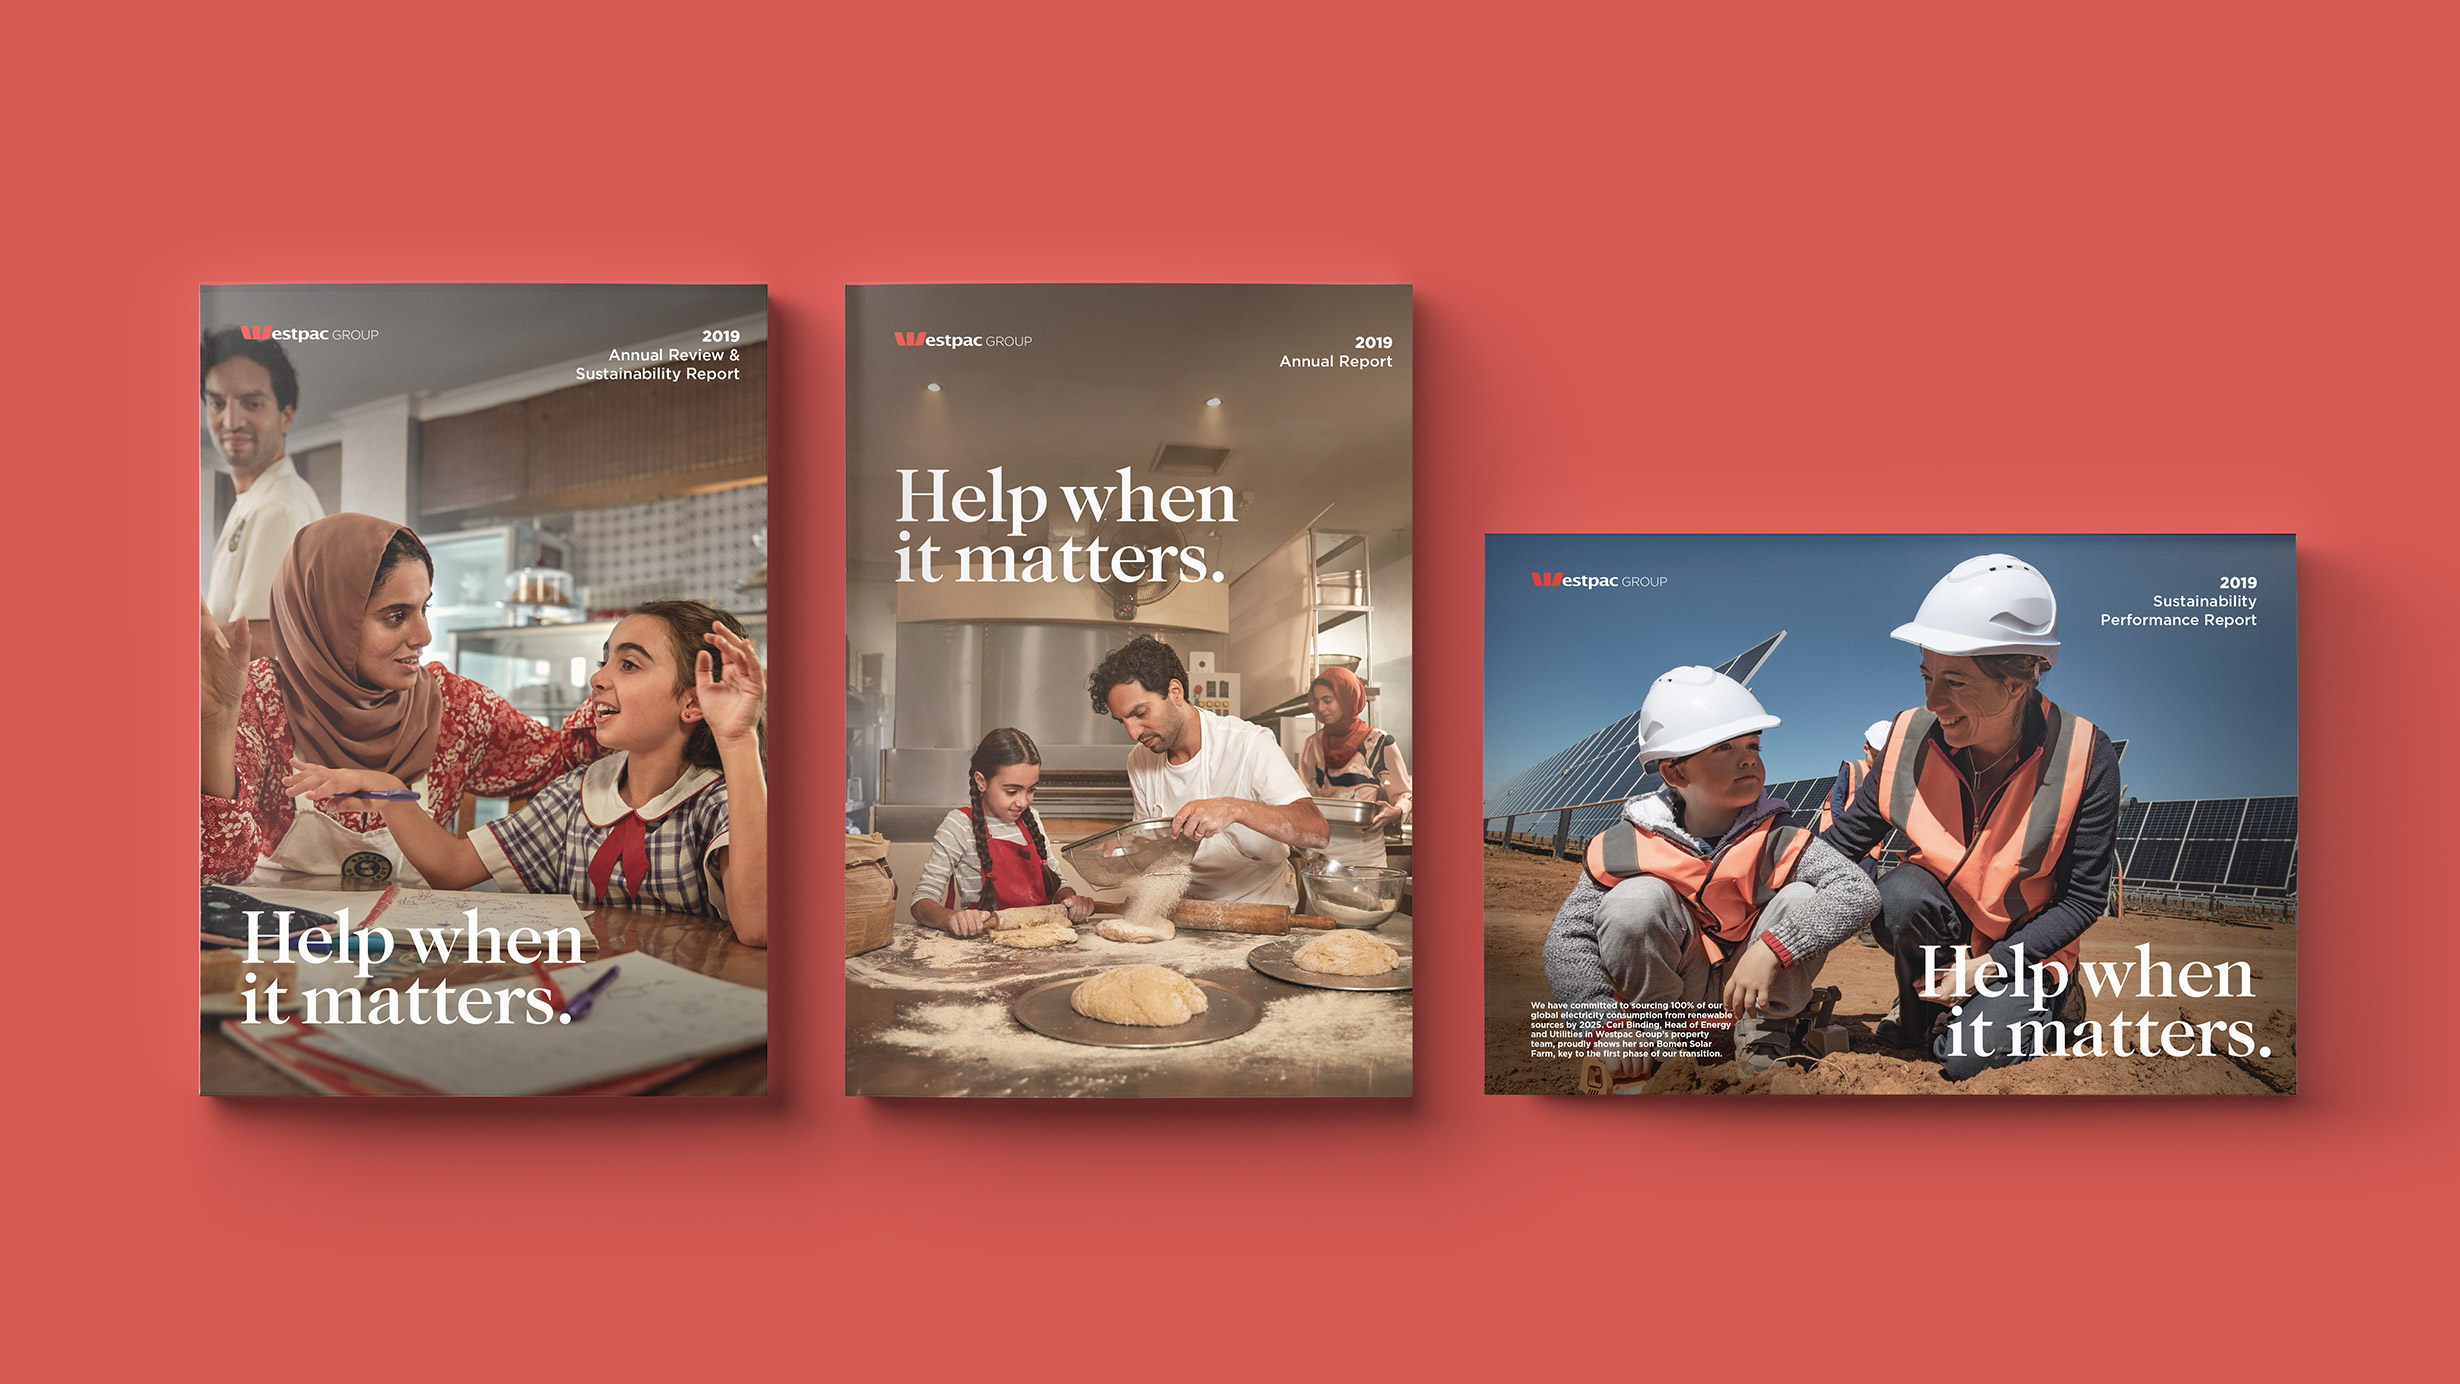 Westpac 2019 Annual Report. Printed material front covers and interactive PDF cover.